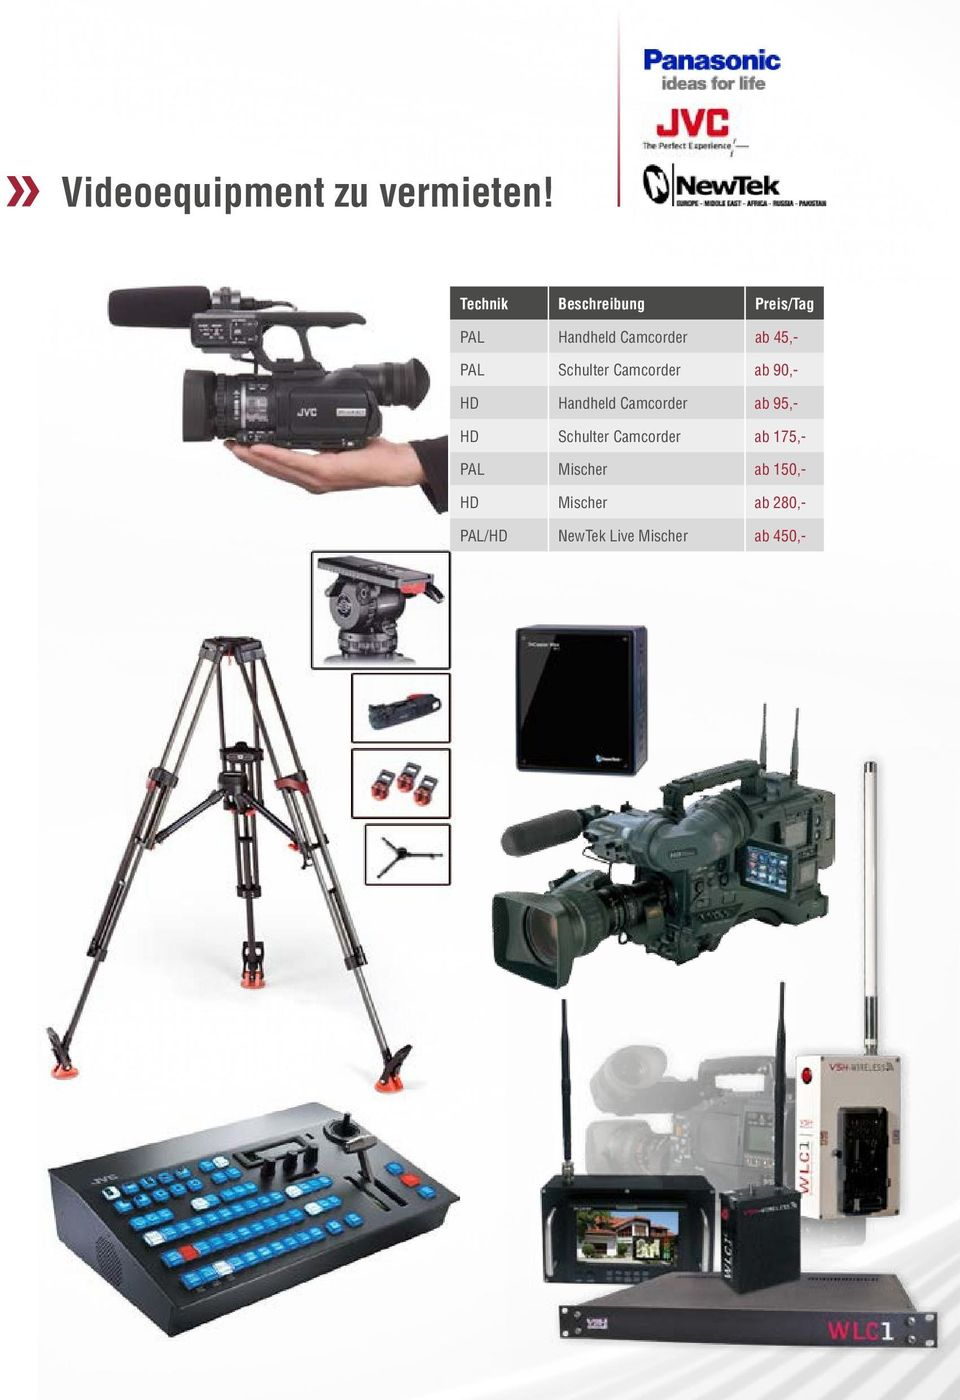 PAL Schulter Camcorder ab 90,- HD Handheld Camcorder ab 95,- HD